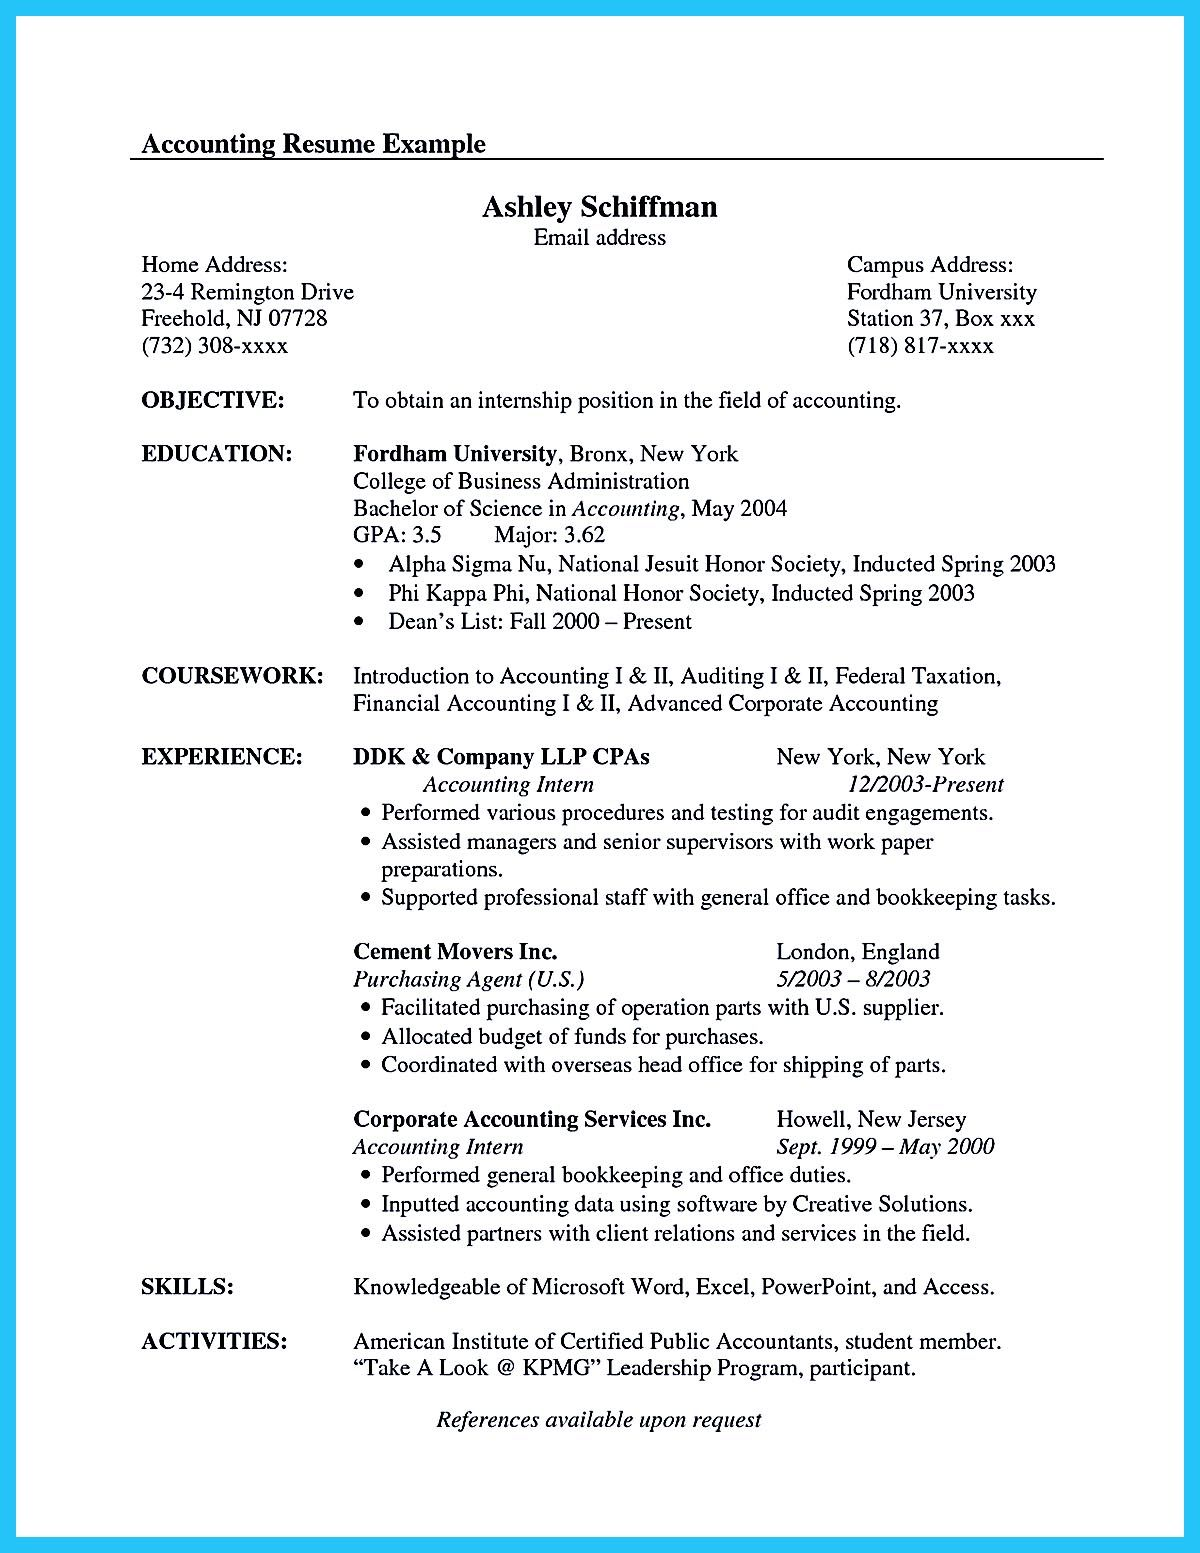 Pin on Resume Samples | Pinterest | Accounting student, Student ...